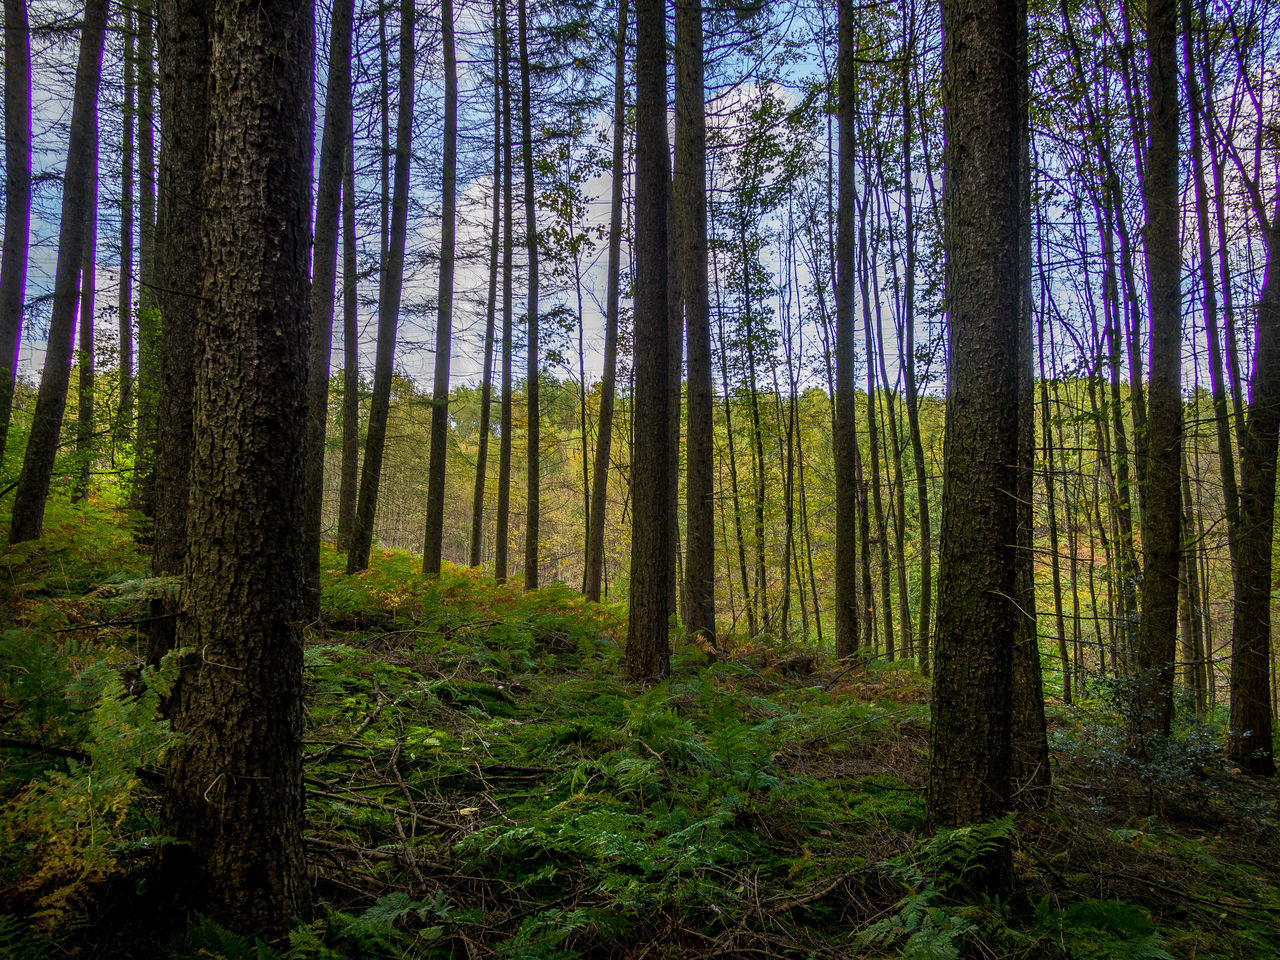 forest, tree, land, tree trunk, plant, trunk, woodland, tranquil scene, growth, tranquility, scenics - nature, nature, non-urban scene, beauty in nature, no people, landscape, pine tree, pine woodland, environment, day, coniferous tree, outdoors, evergreen tree